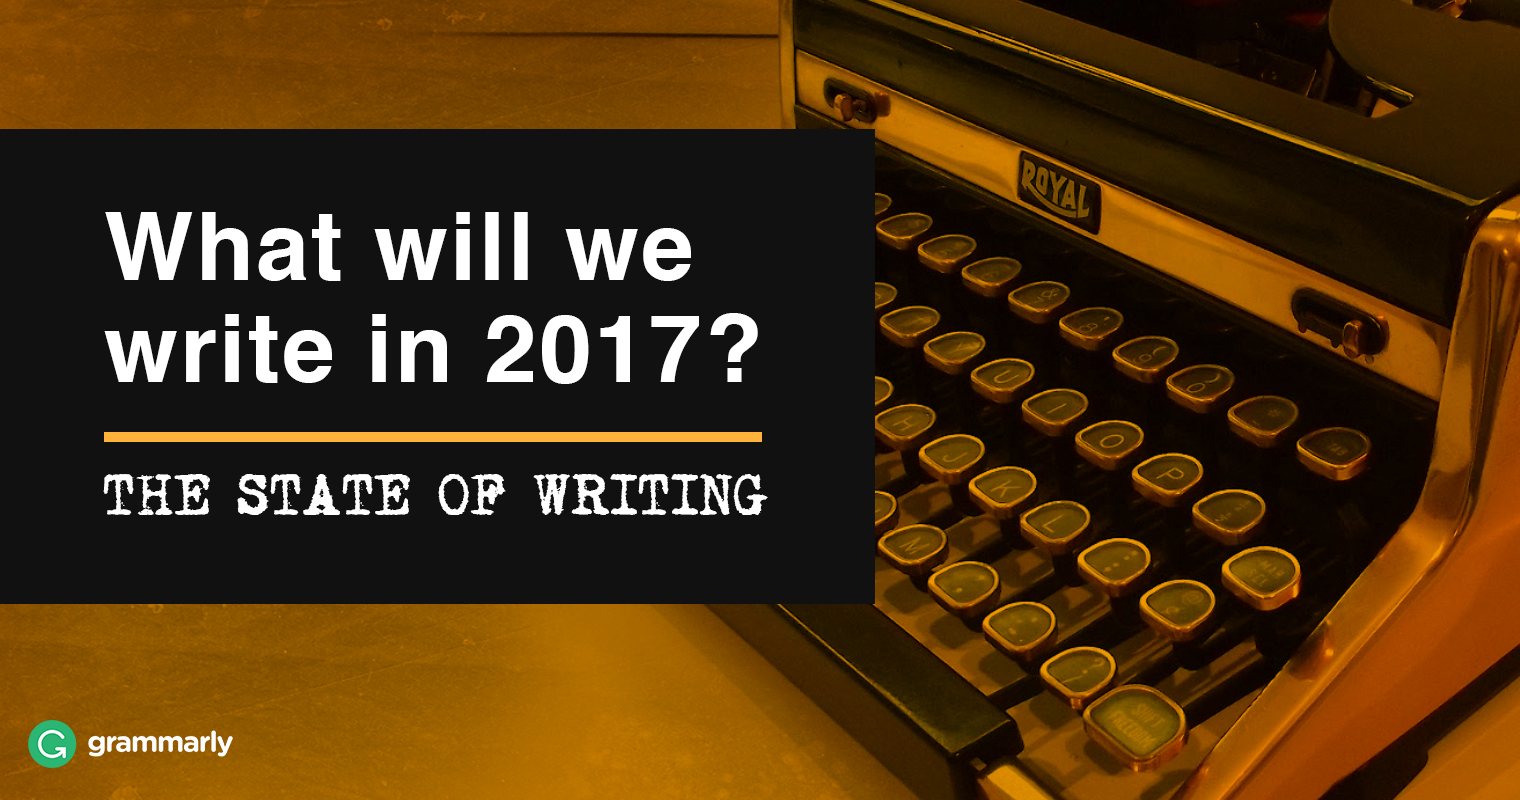 English writing trends in 2017